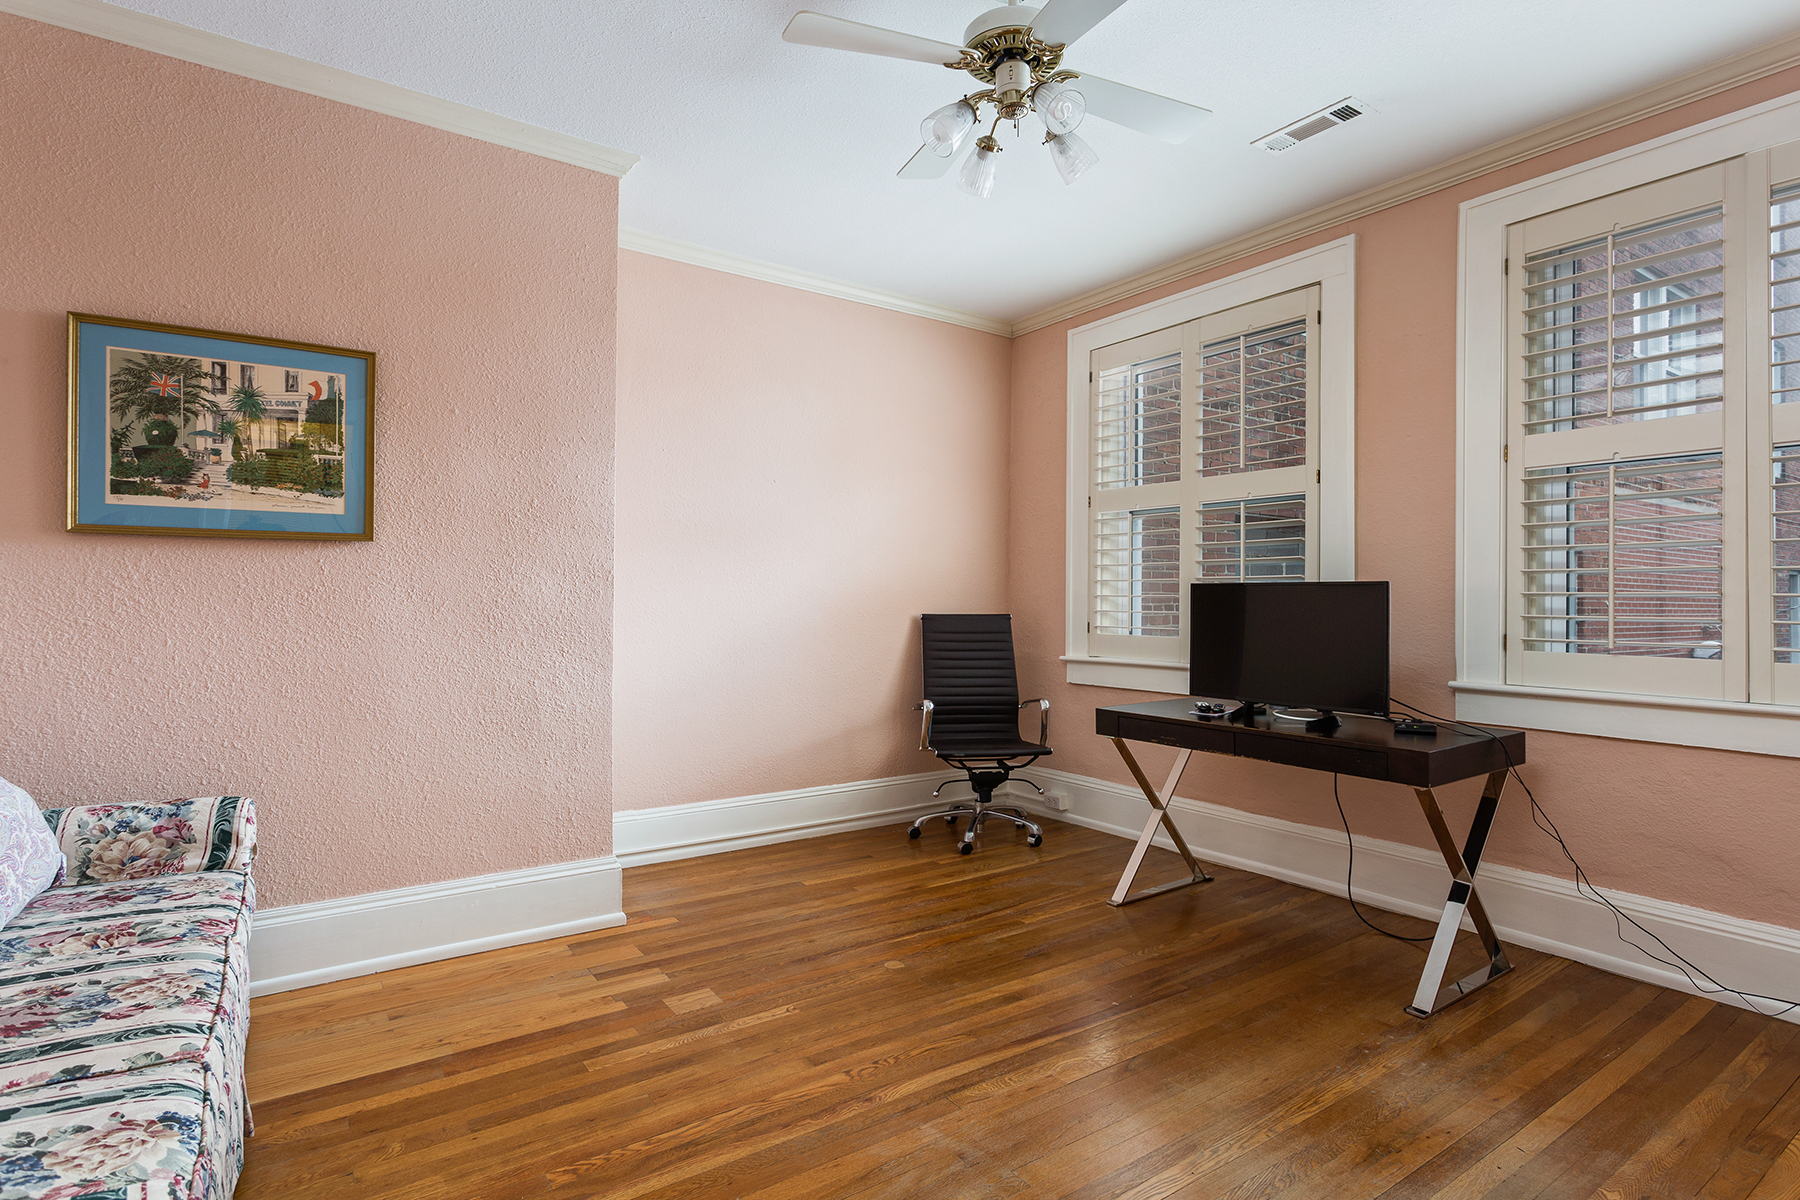 Additional photo for property listing at HENDERSONVILLE 411 N Main St 409,  Hendersonville, North Carolina 28792 United States